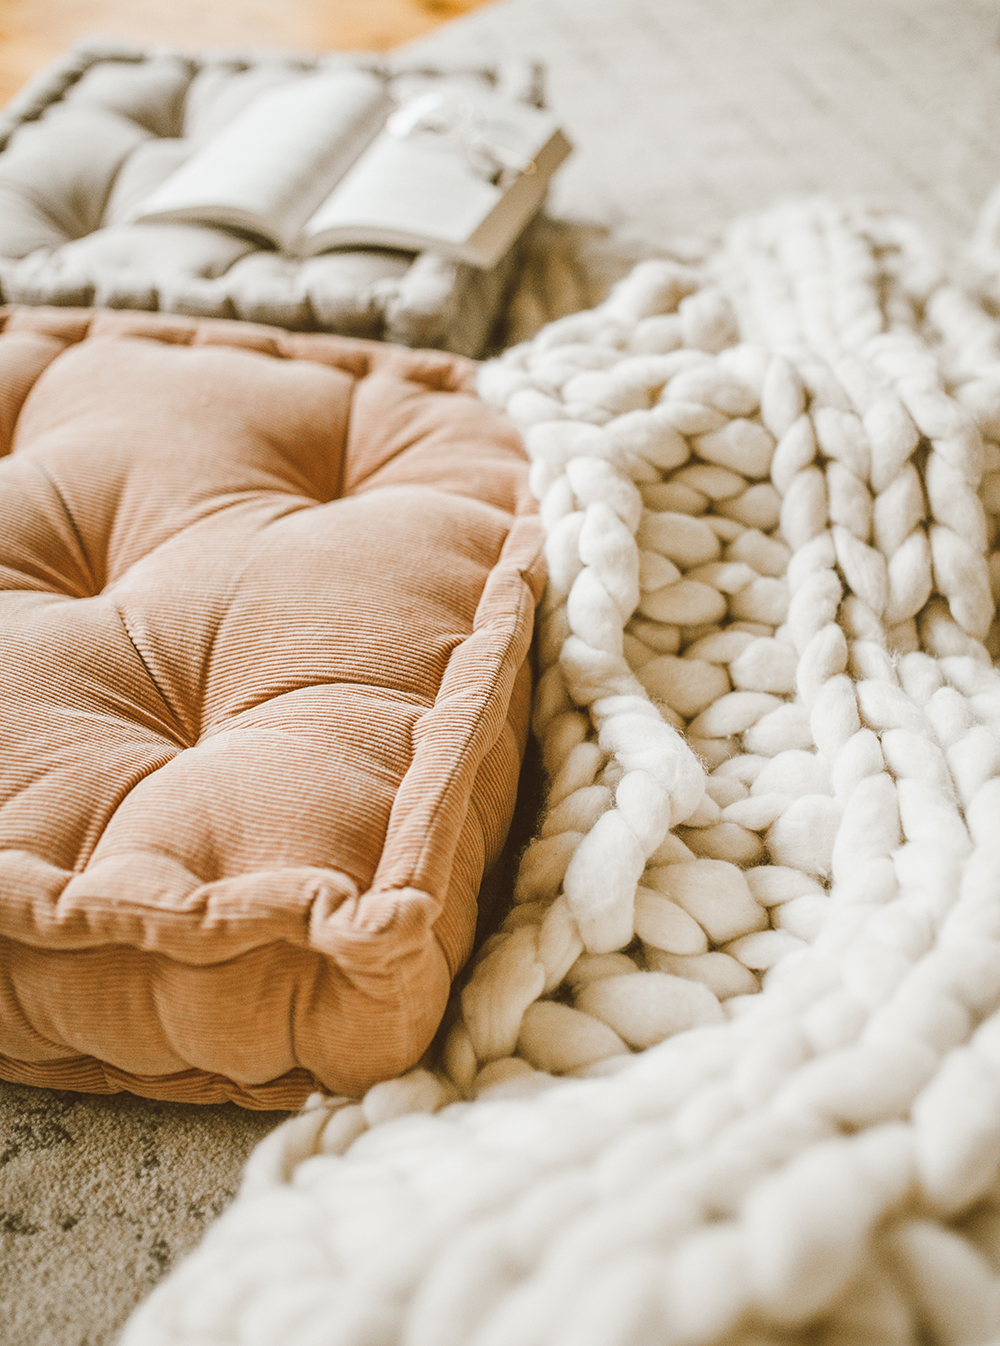 livvyland-blog-olivia-watson-austin-texas-lifestyle-blog-urban-outfitters-home-decor-bohemian-cozy-floor-cushions-blush-rose-1